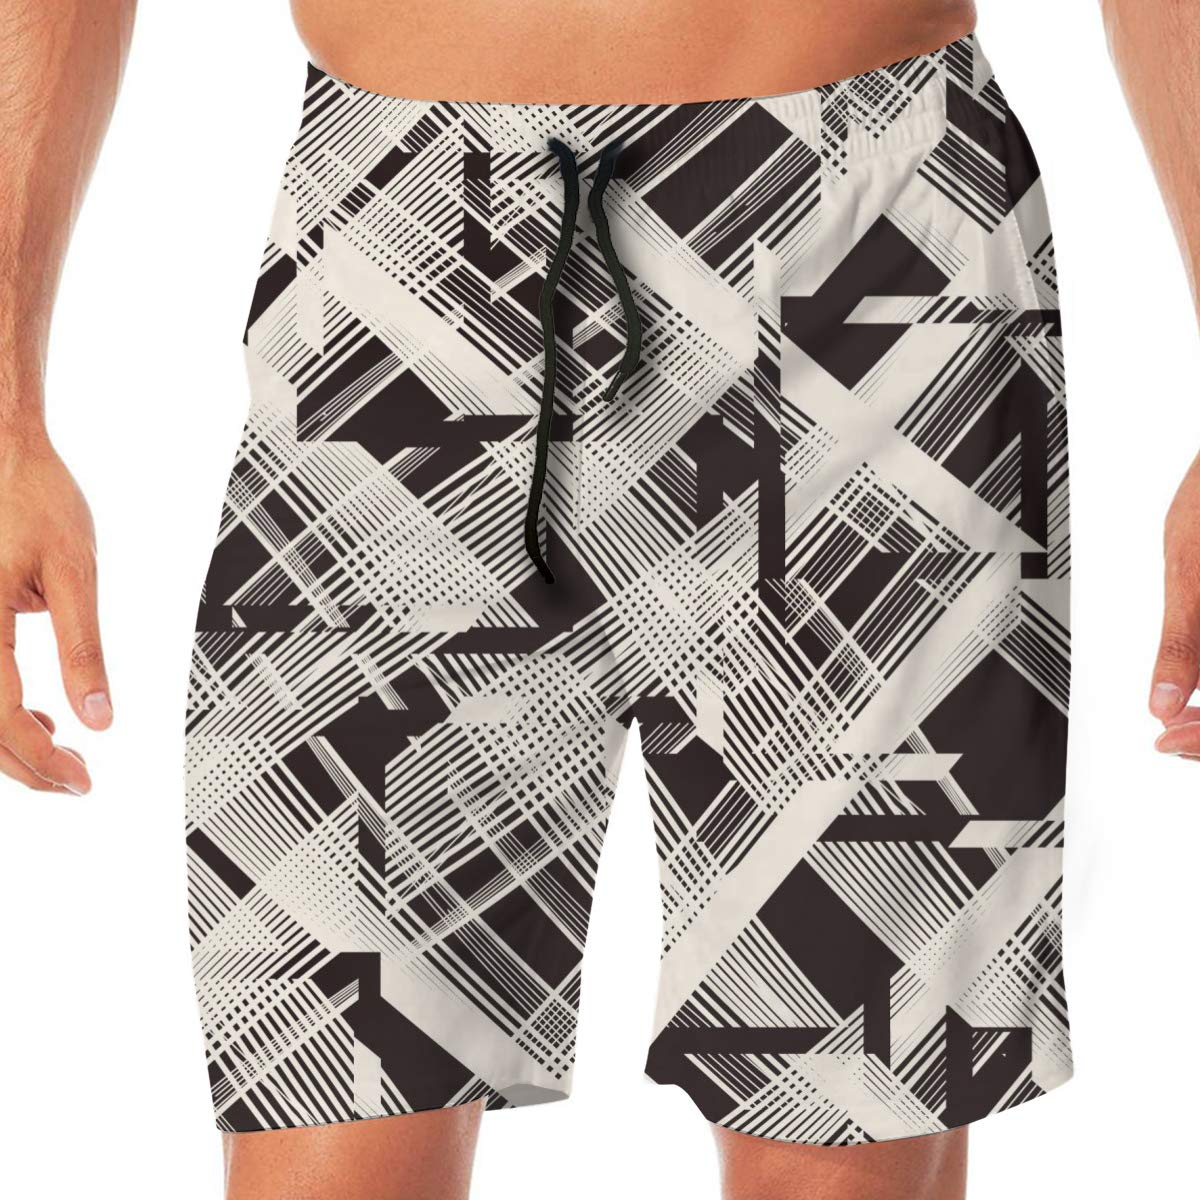 Mens Swim Trunks Quick Dry Abstract Symbolism Lines Multi-Faceted Beach Board Shorts Swimming Short with Pockets